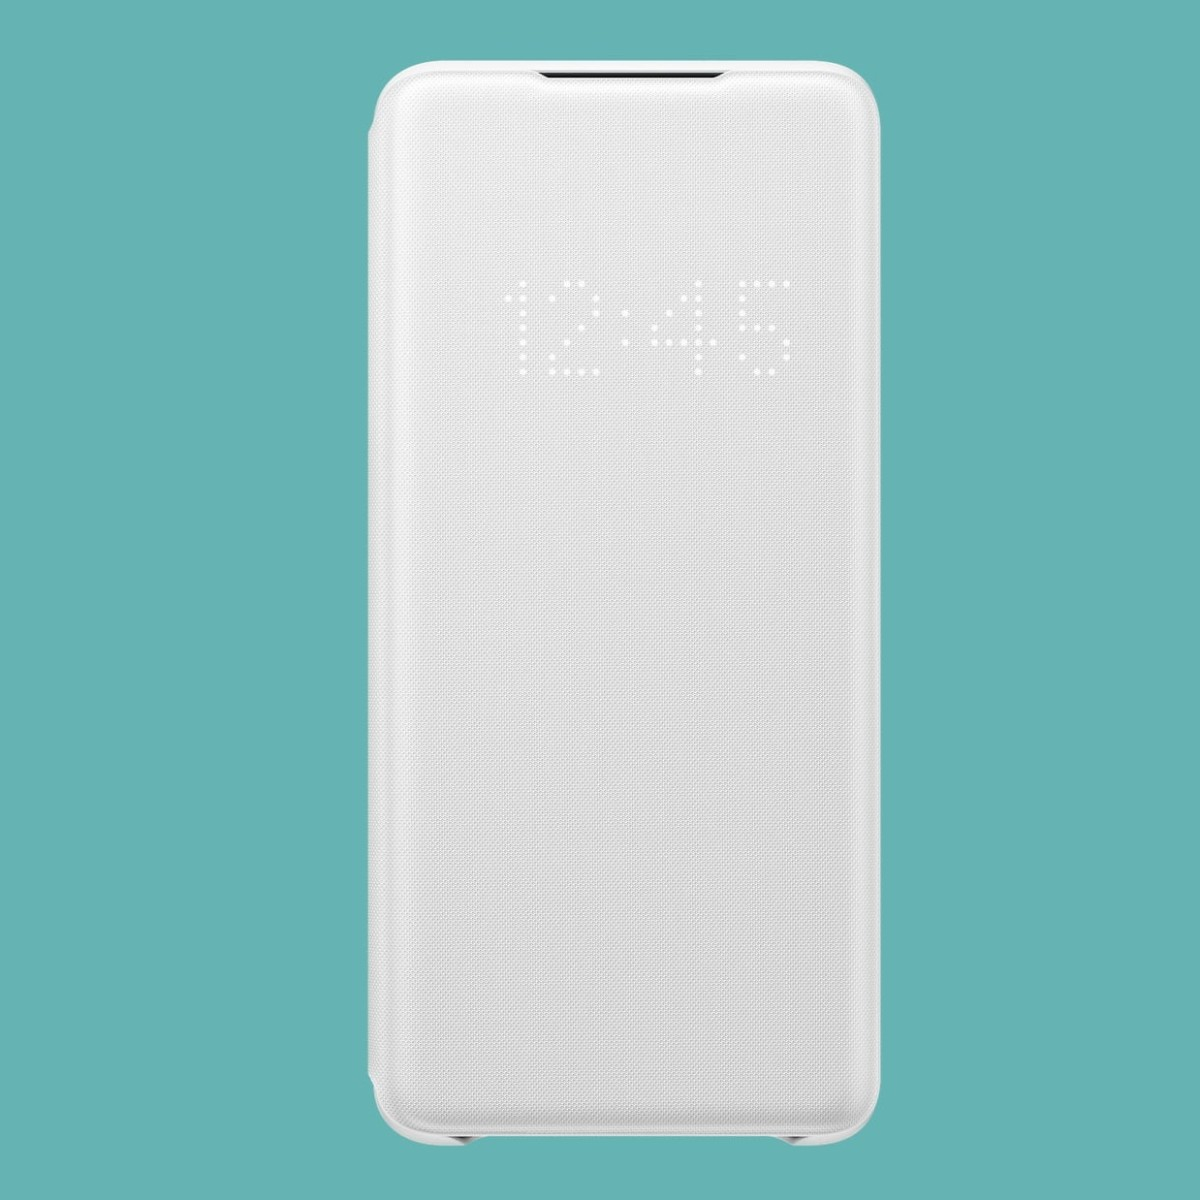 Samsung Smart LED View Cover Galaxy S20 Series Case displays notifications